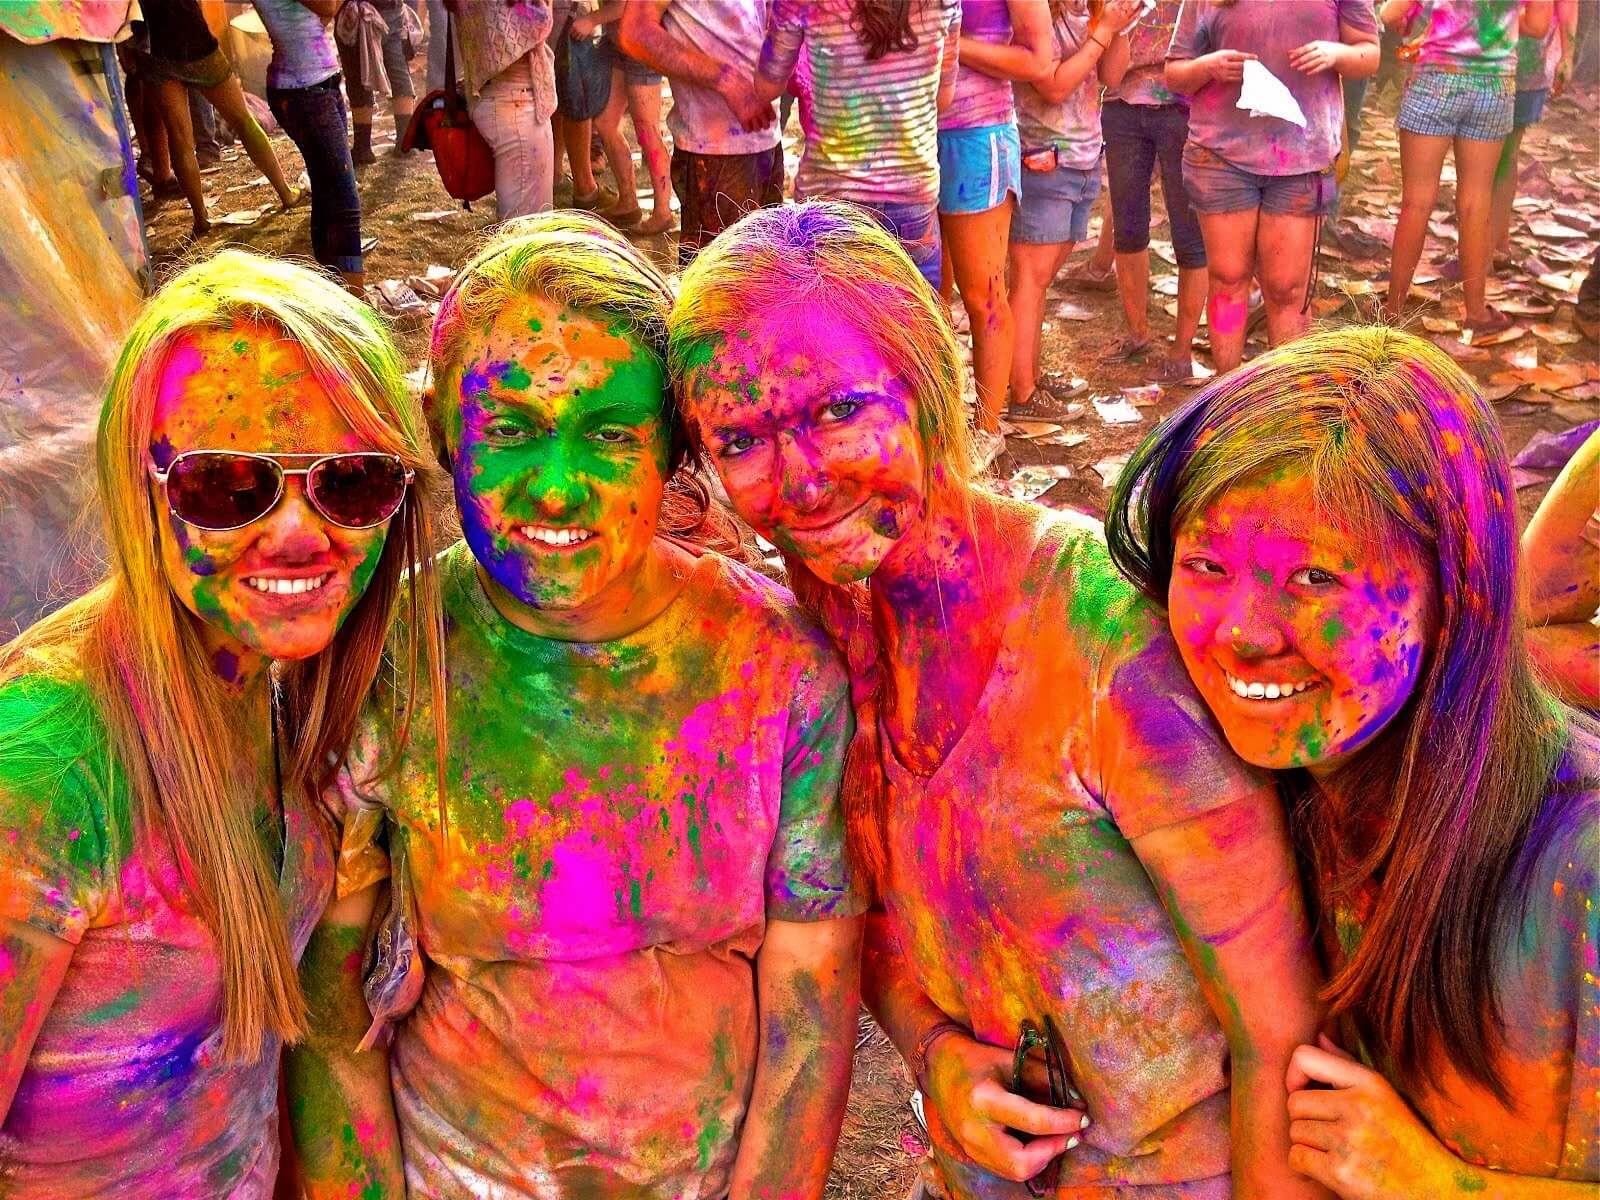 best holi images in p resolution best holi images in 1080p resolution festival